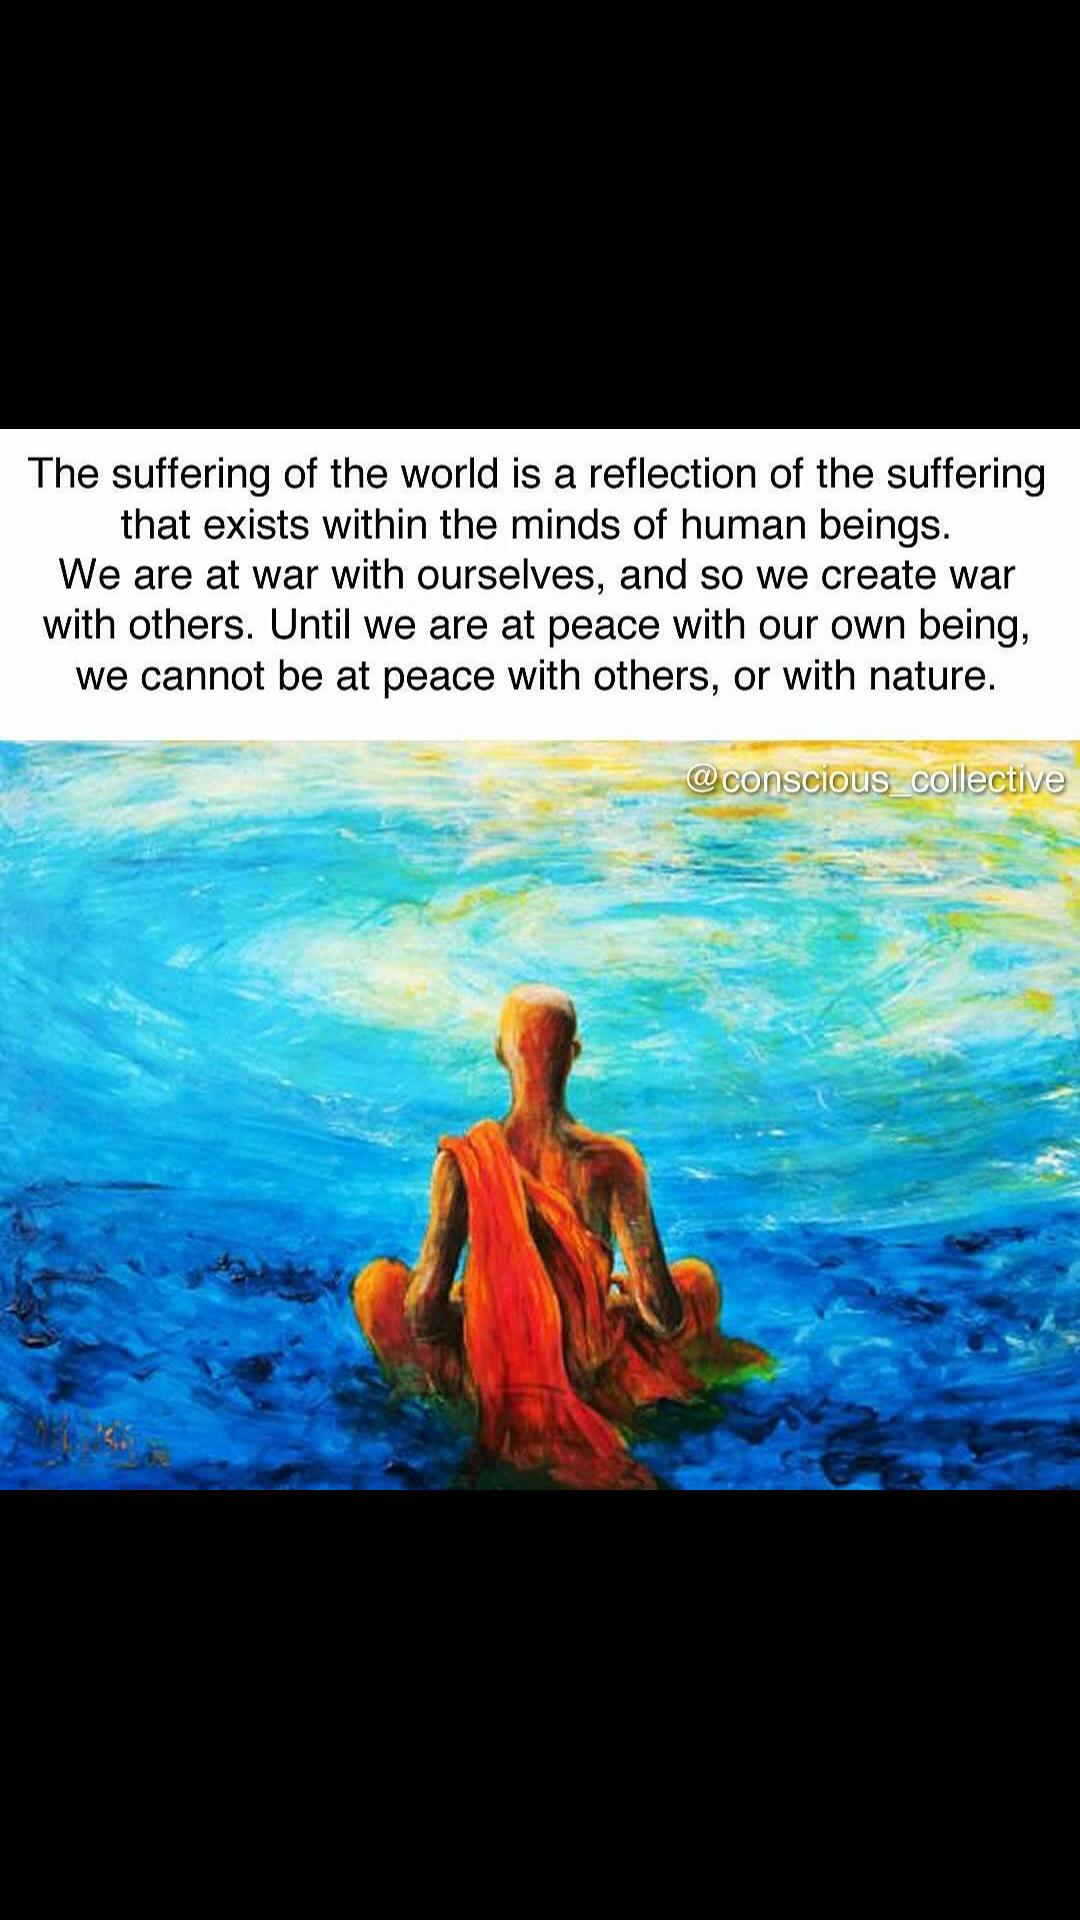 """The suffering of the world is a reflection of the suffering that exists within the minds of human beings"" – True (1080*1920)"